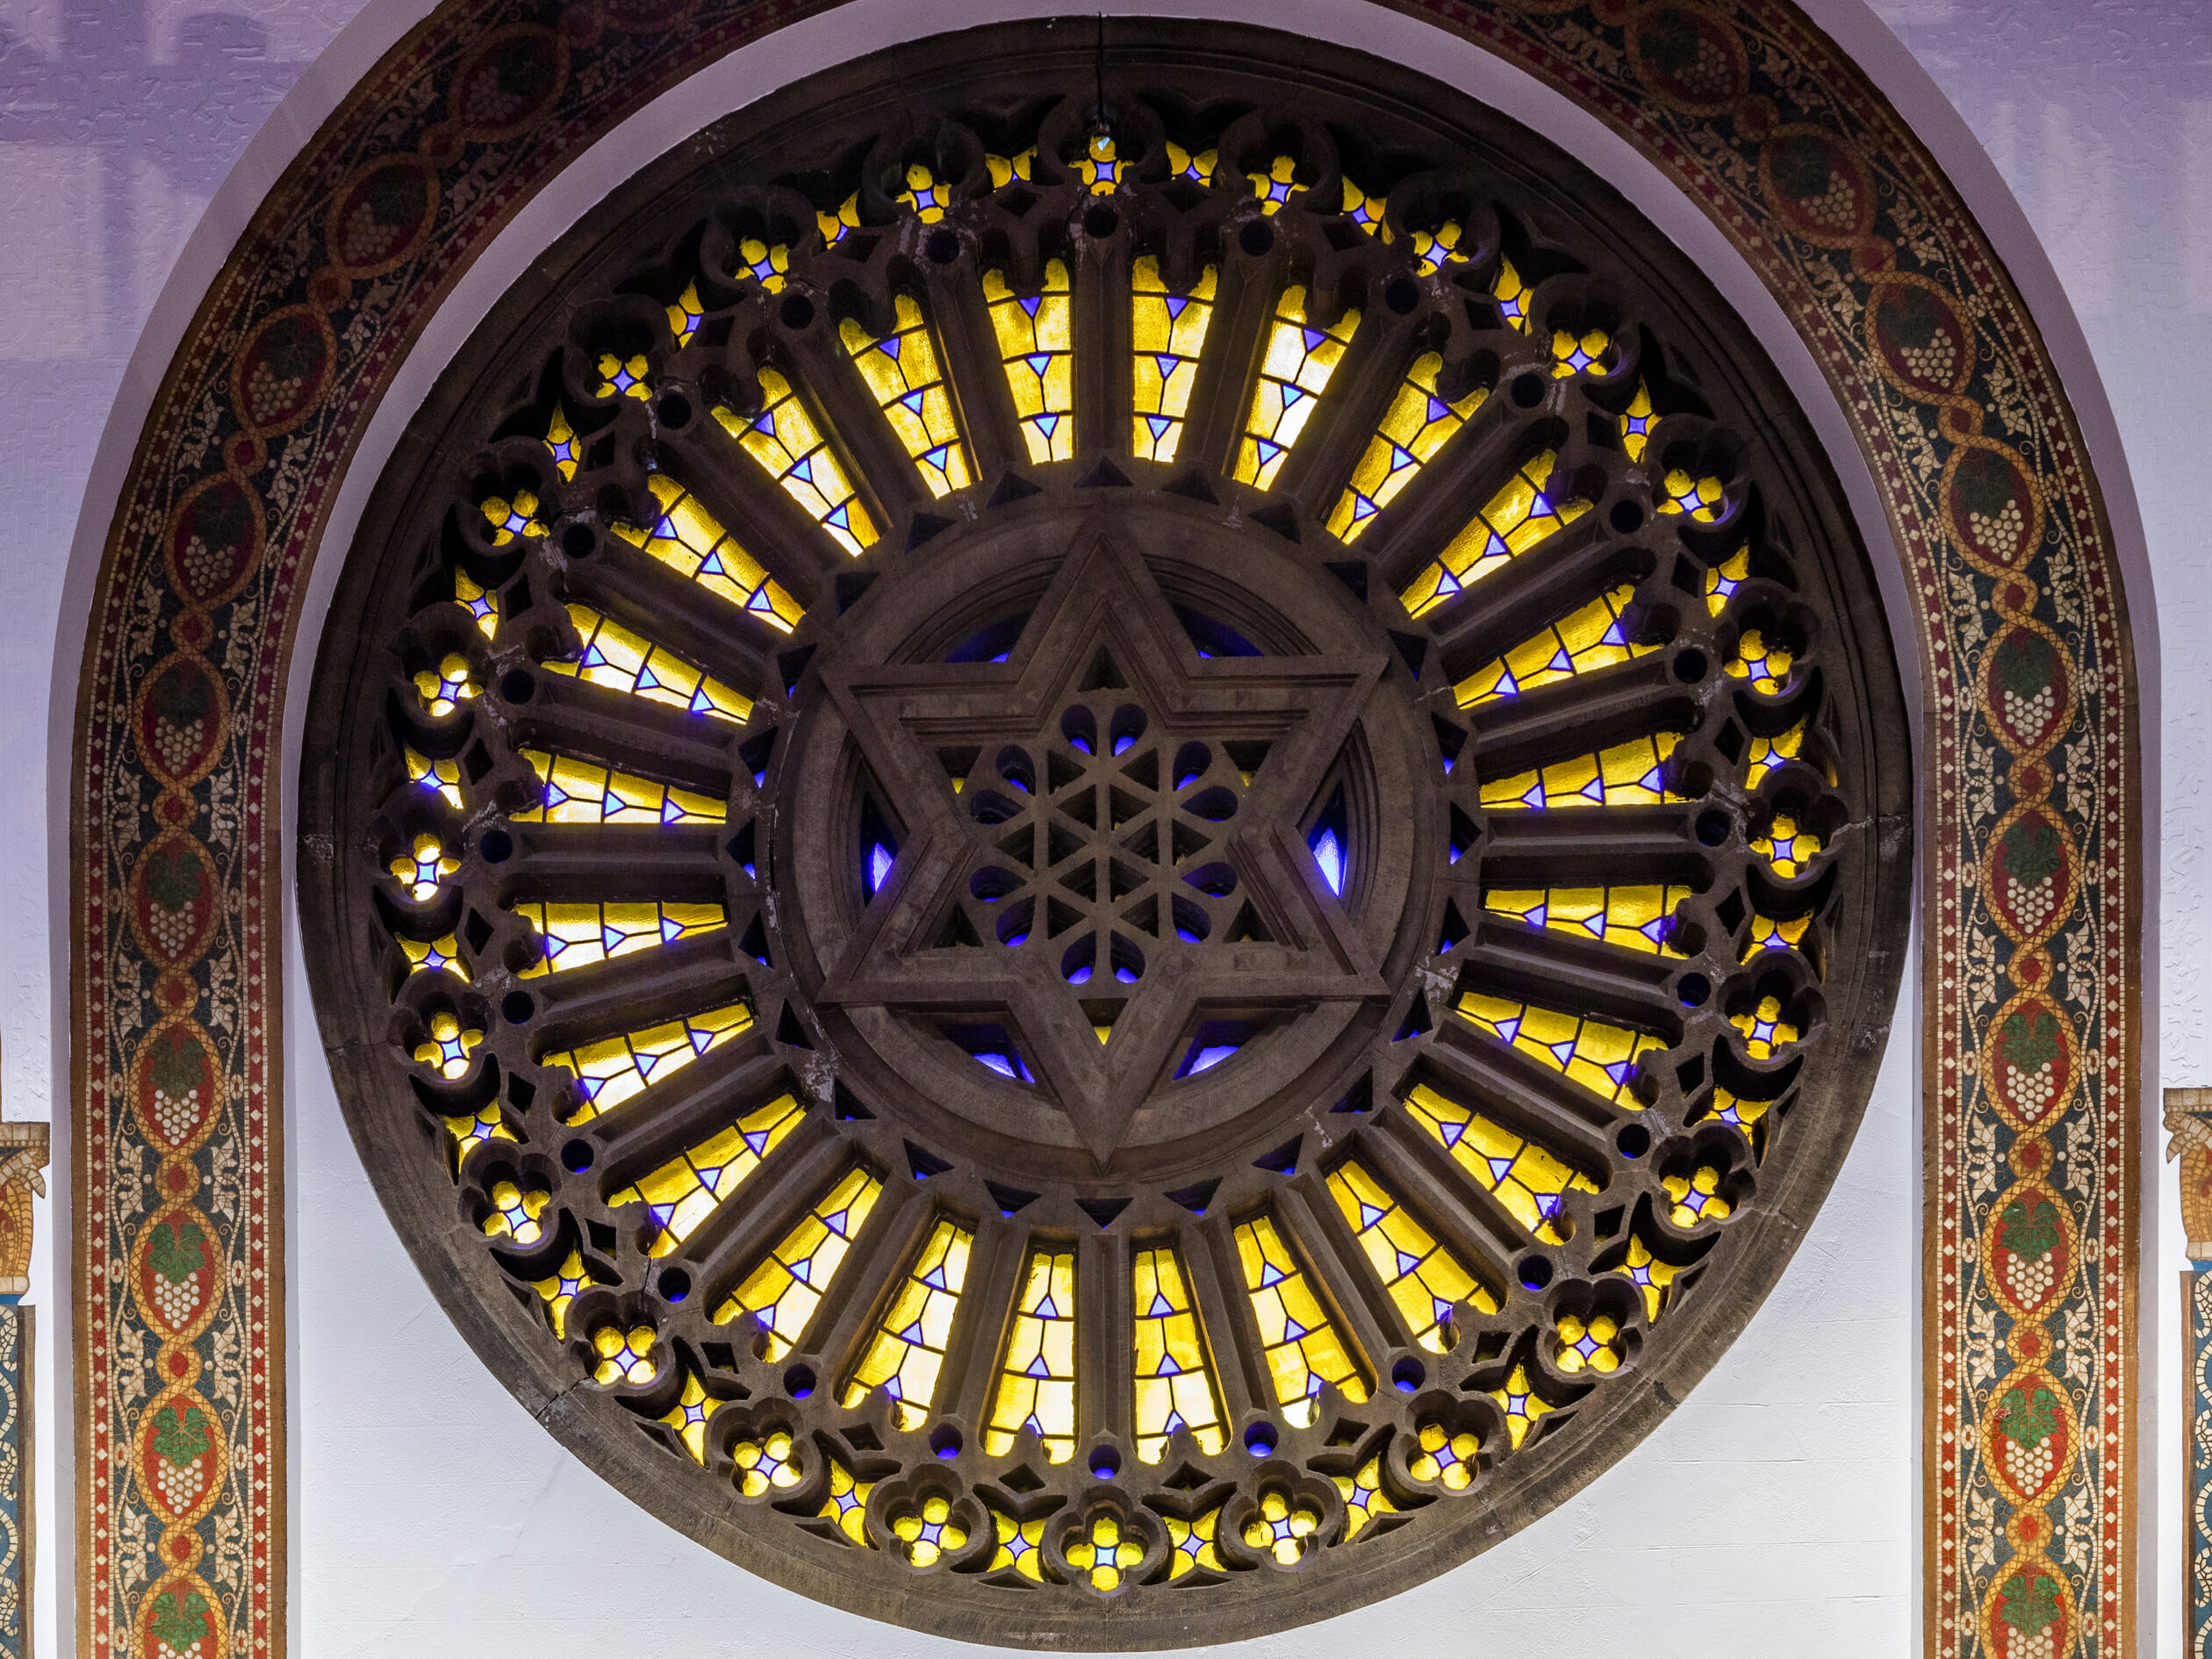 ornate designs at b'nai jeshurun